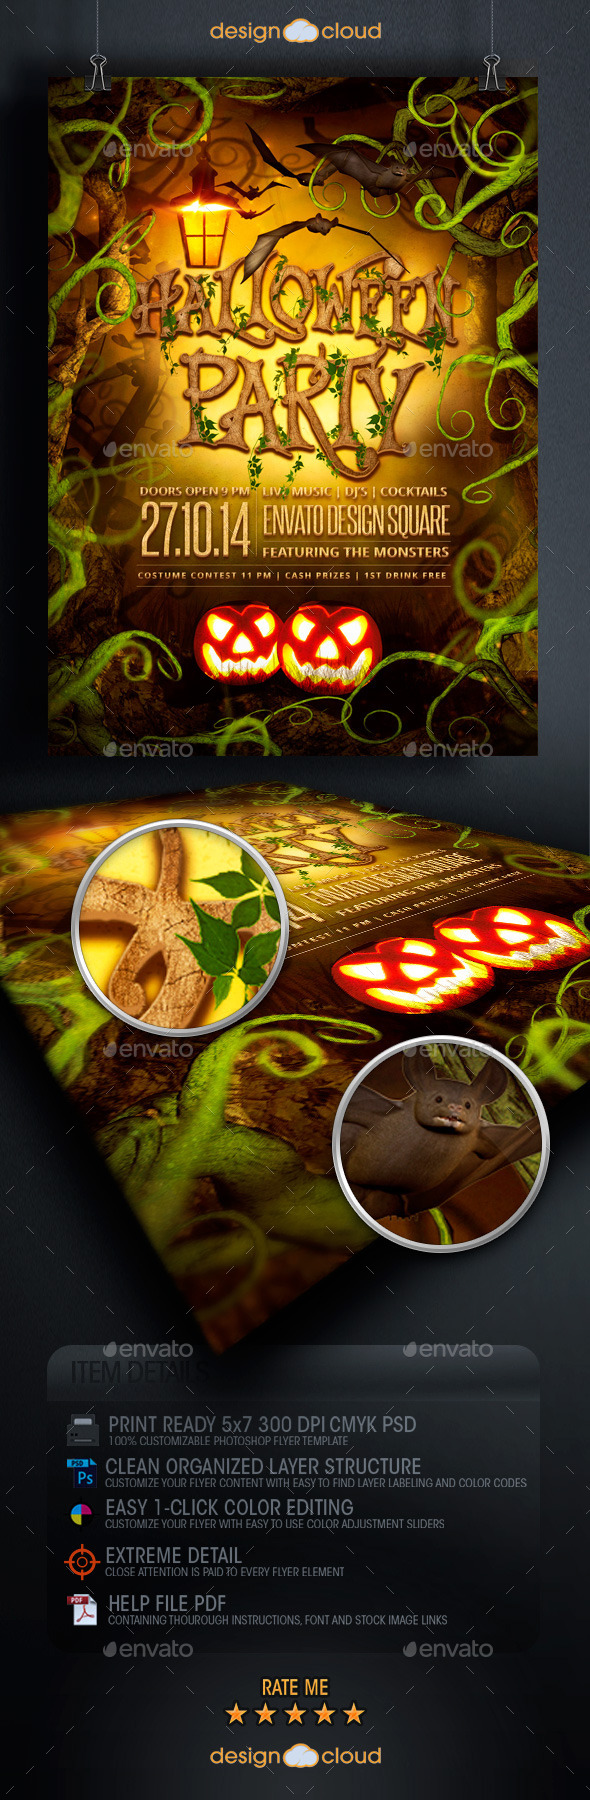 Spooky Forest Halloween Party Flyer Template